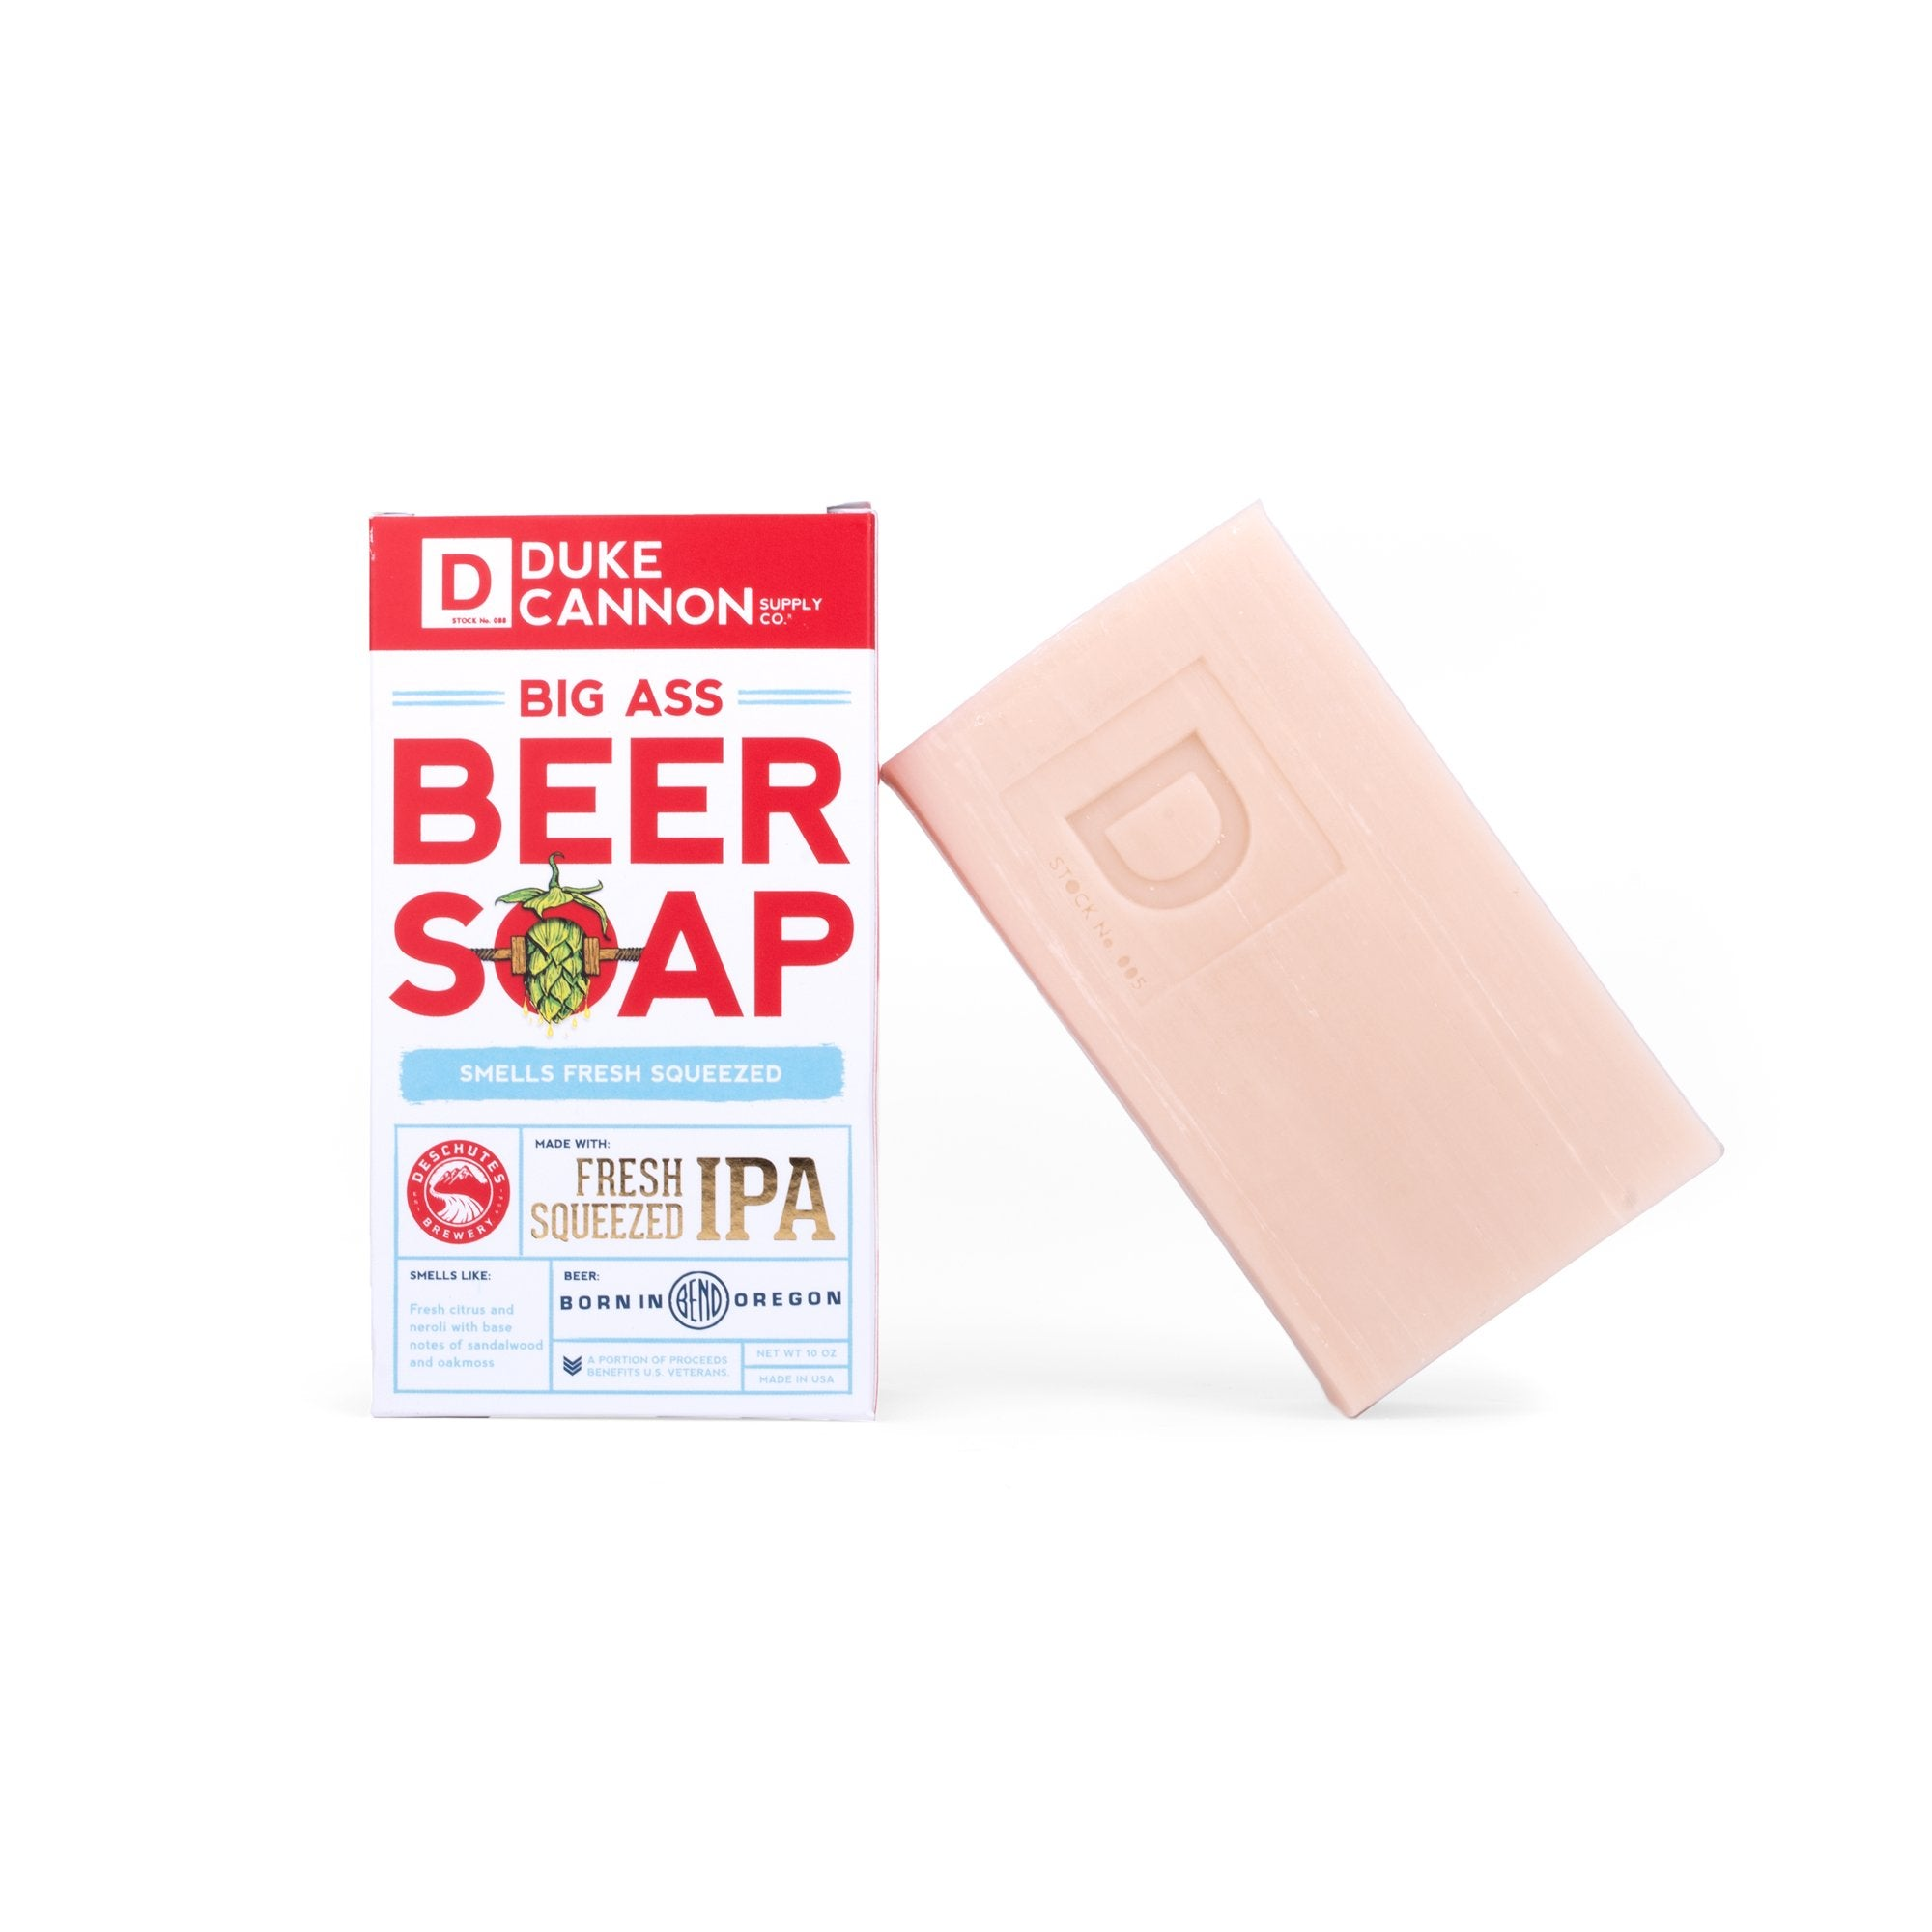 Duke Cannon Beer Soap Deschutes IPA